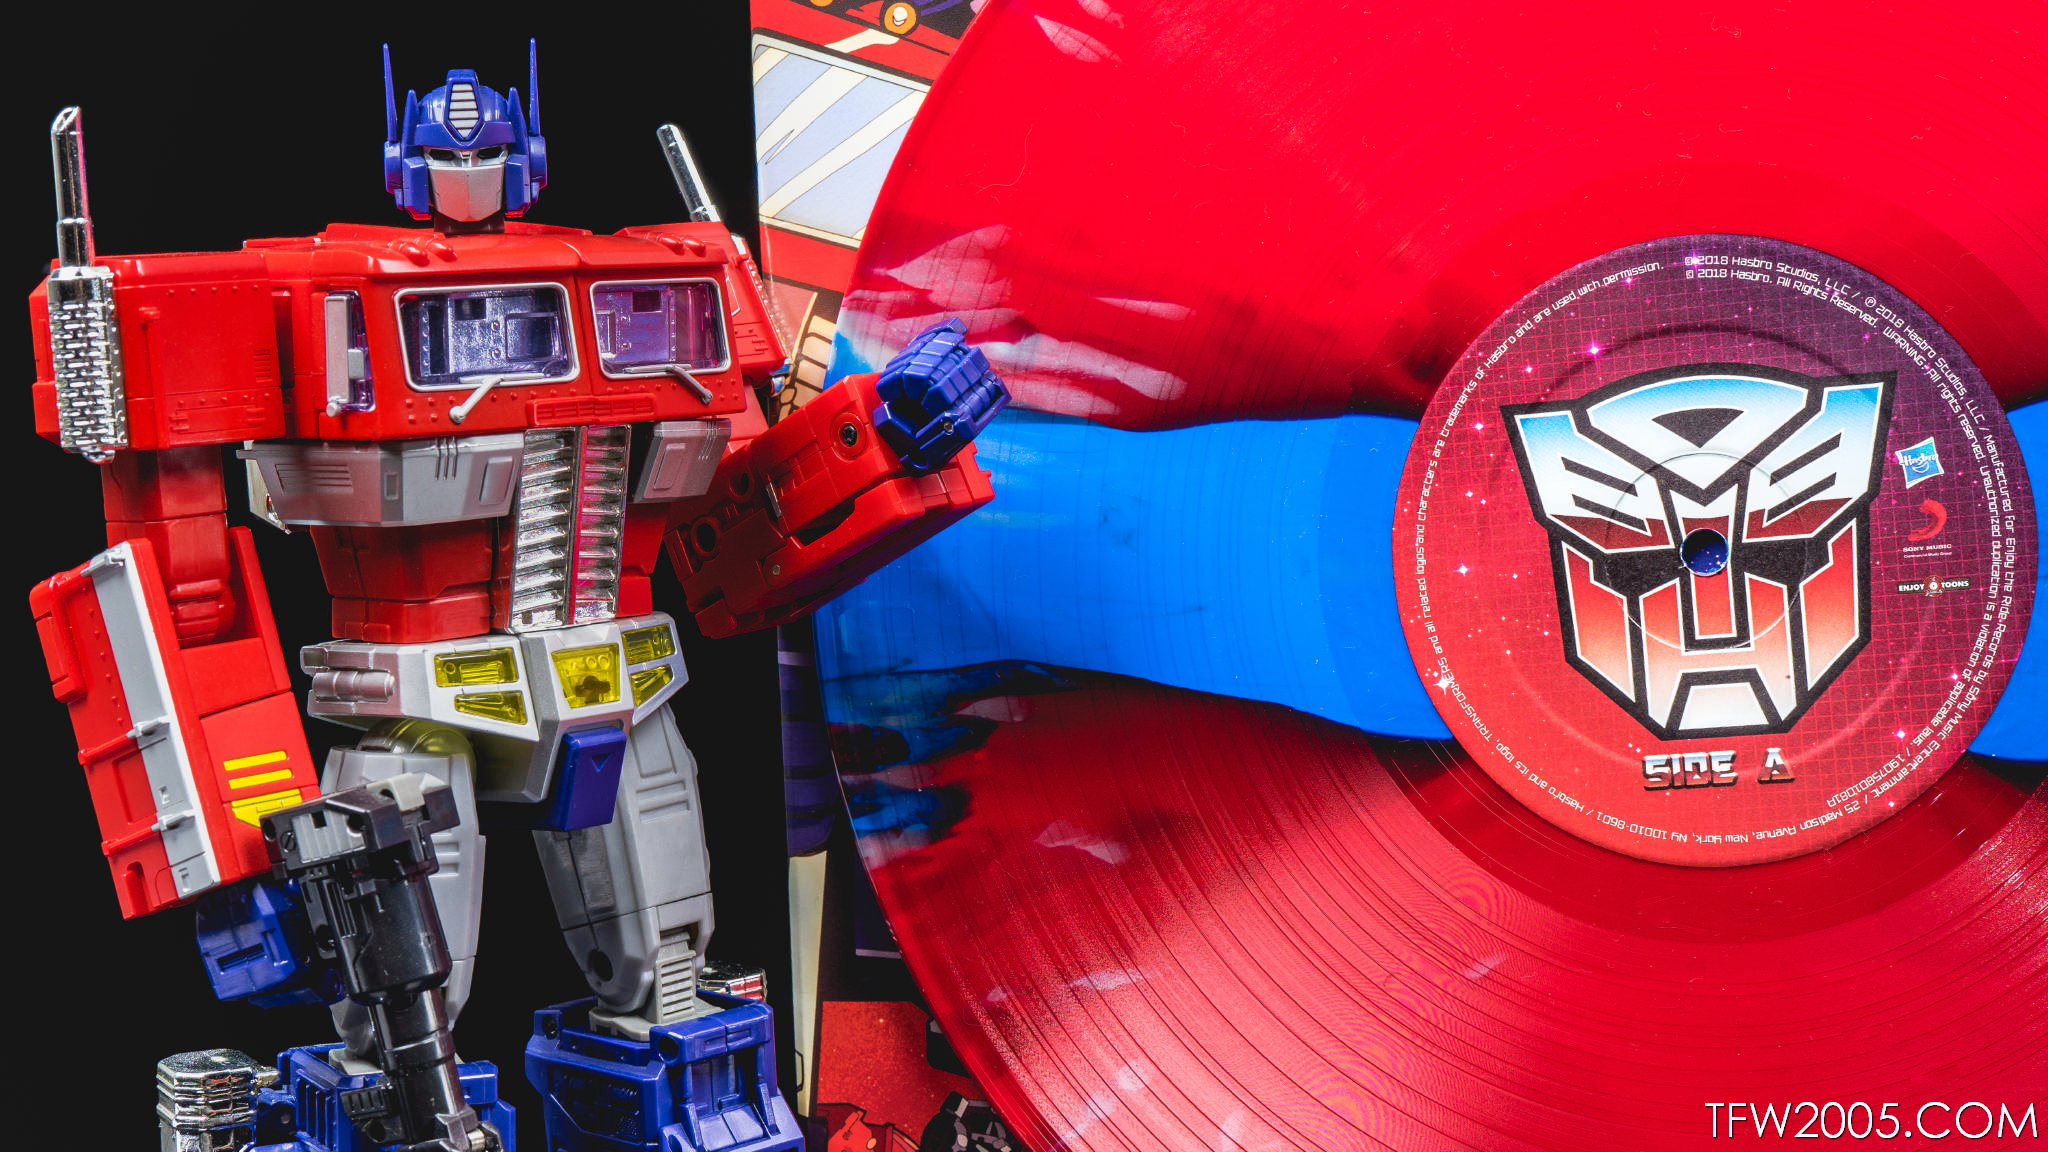 Transformers G1 Score Vinyl Repress Confirmed